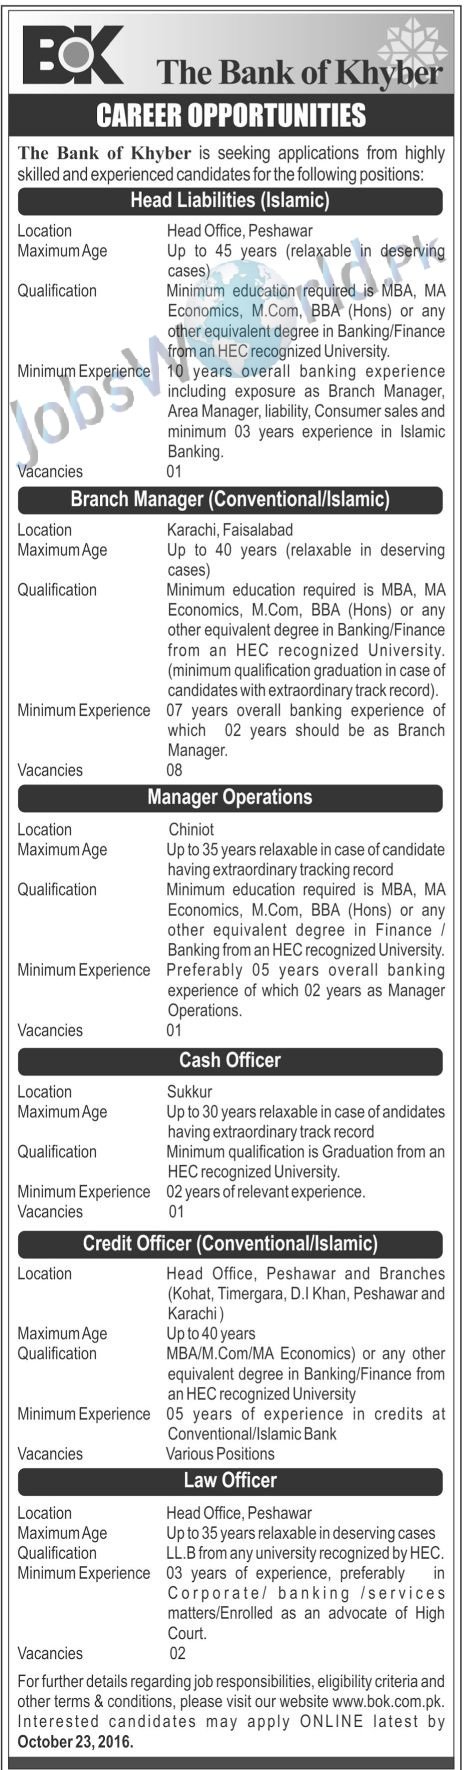 the bank of khyber jobs opportunity multiple posts the bank of khyber jobs opportunity 2016 multiple posts jobsworld